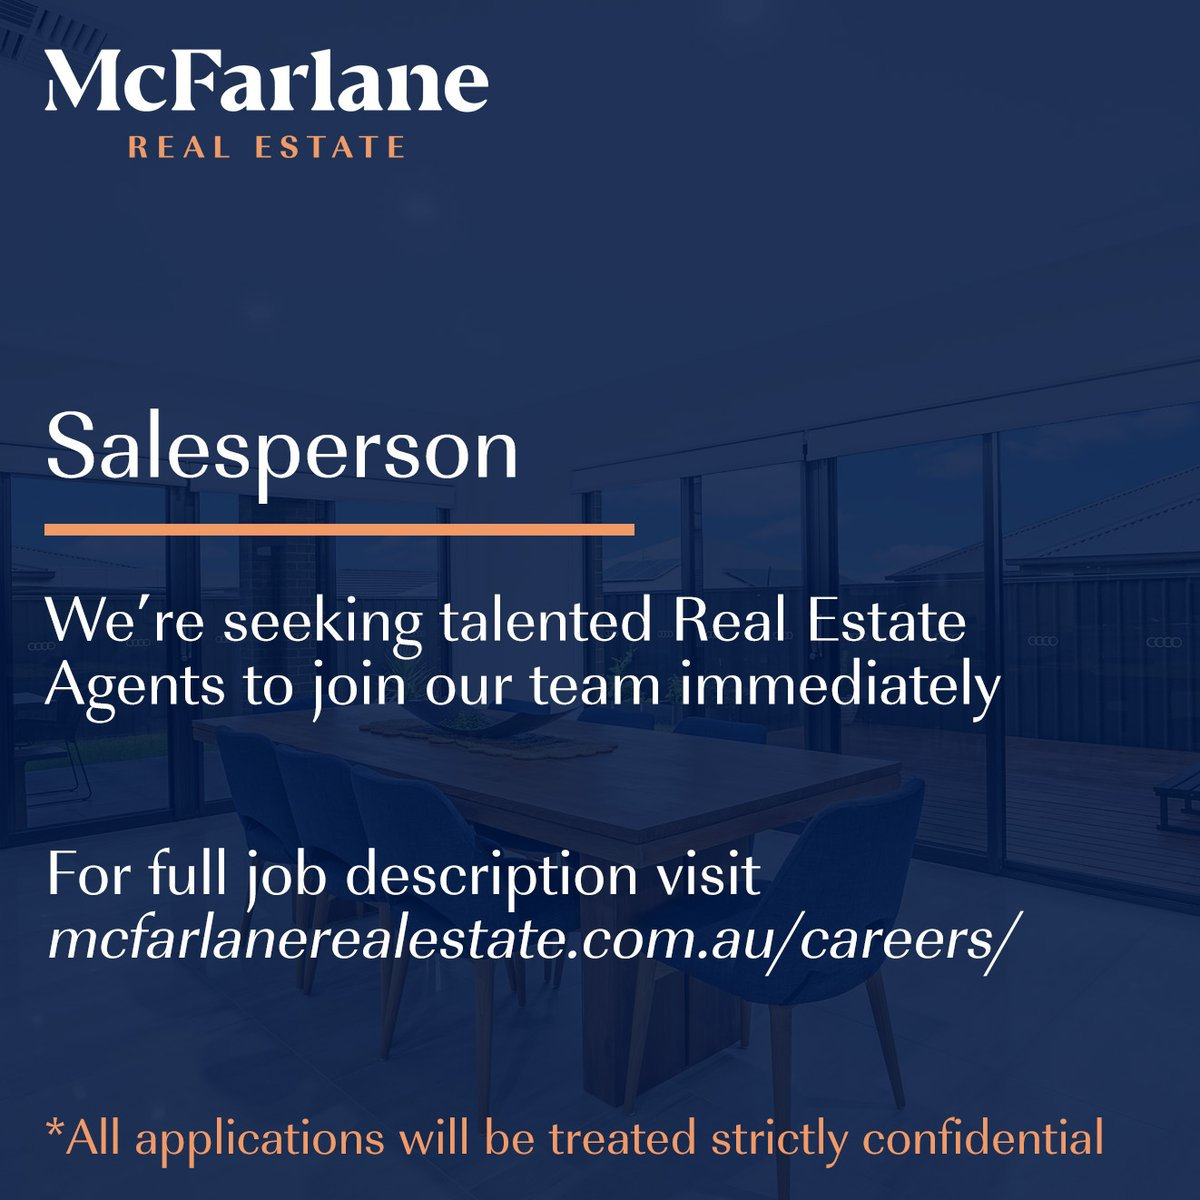 WE ARE HIRING - Join our team!!   #salesperson #Hiring #realestate #realestateagent #jointheteam https://t.co/JuTxWOmNPI